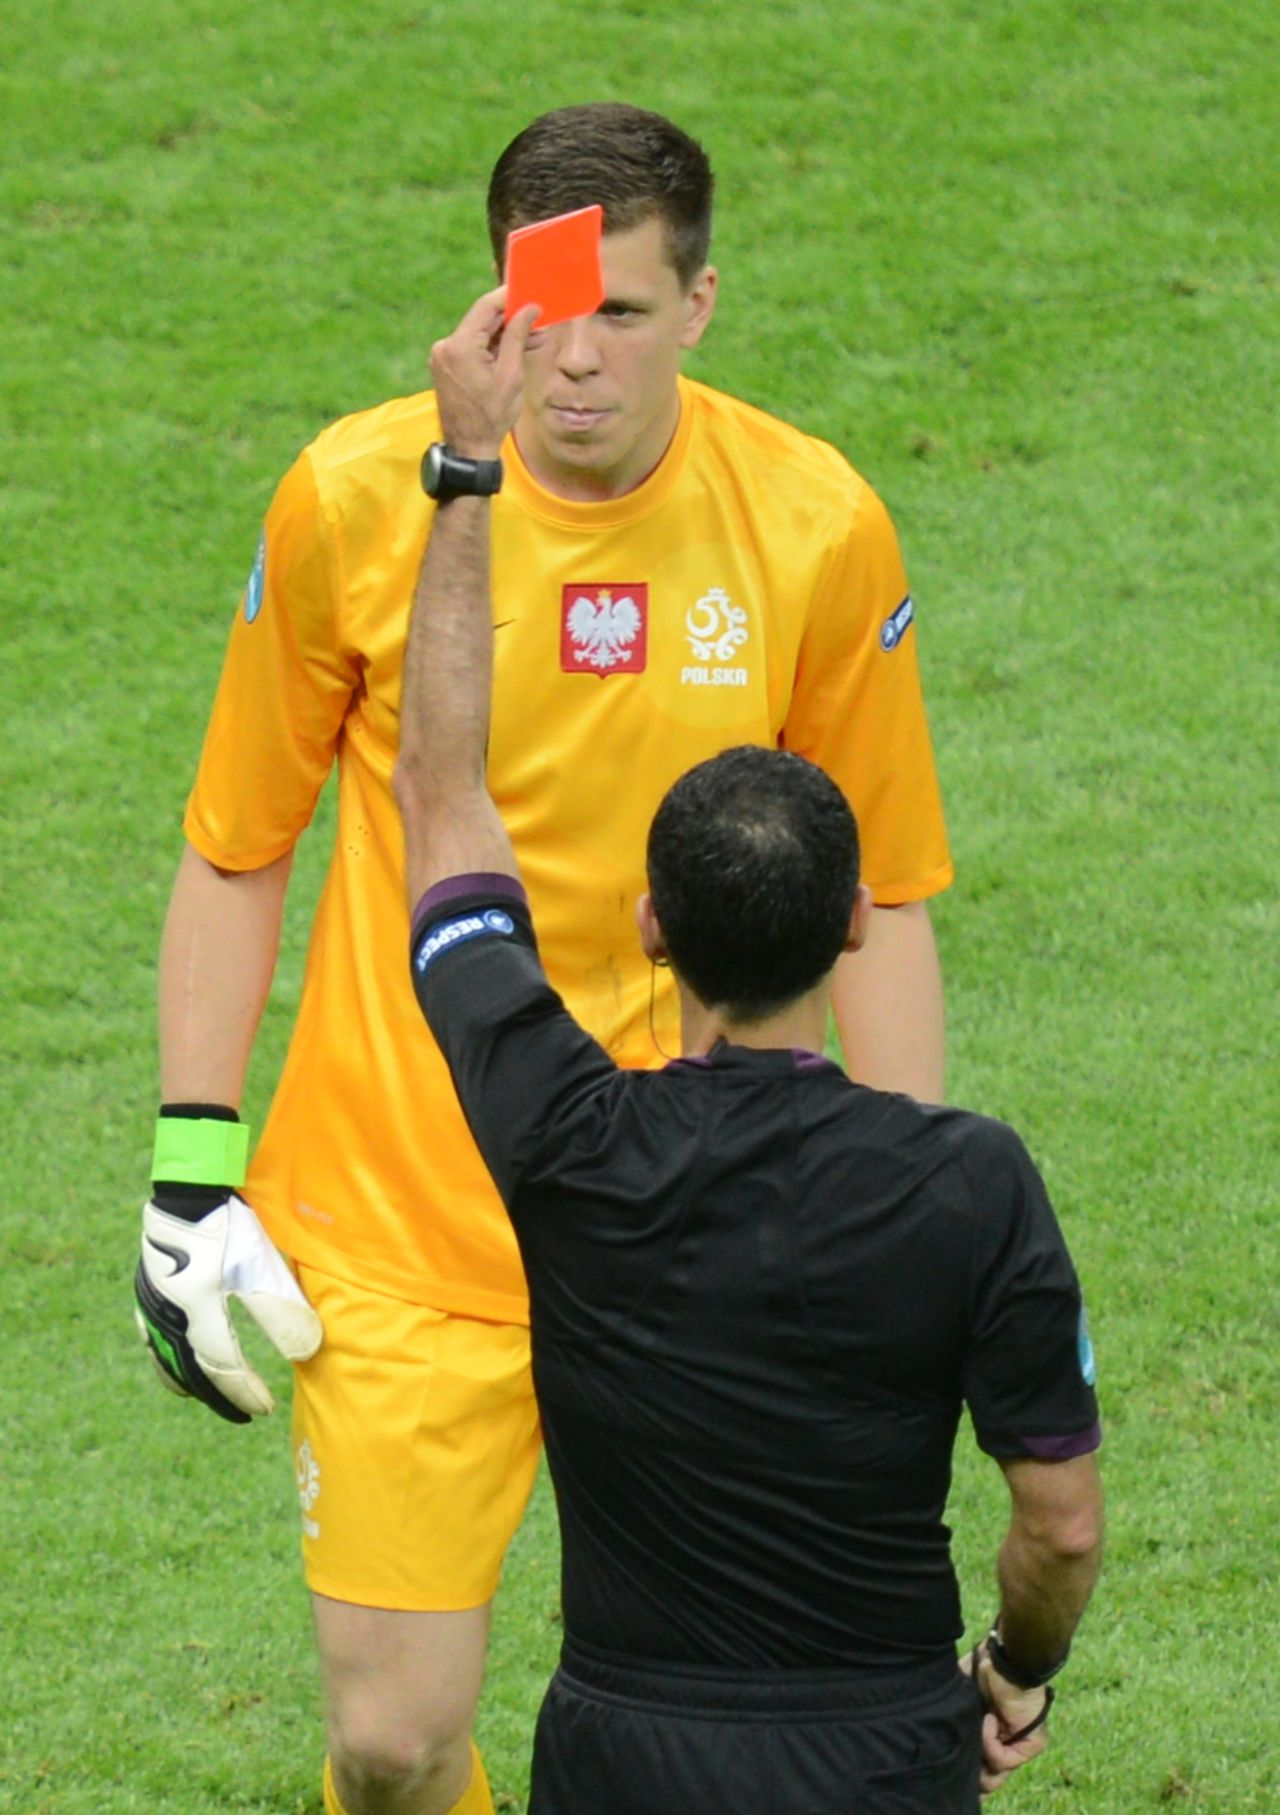 Spanish referee Carlos Velasco Carballo gives a red card to Polish goalkeeper Wojciech Szczesny during the Euro 2012 football championships match Poland vs. Greece, on June 8, 2012 at the National Stadium in Warsaw. AFP PHOTO / JANEK SKARZYNSKI